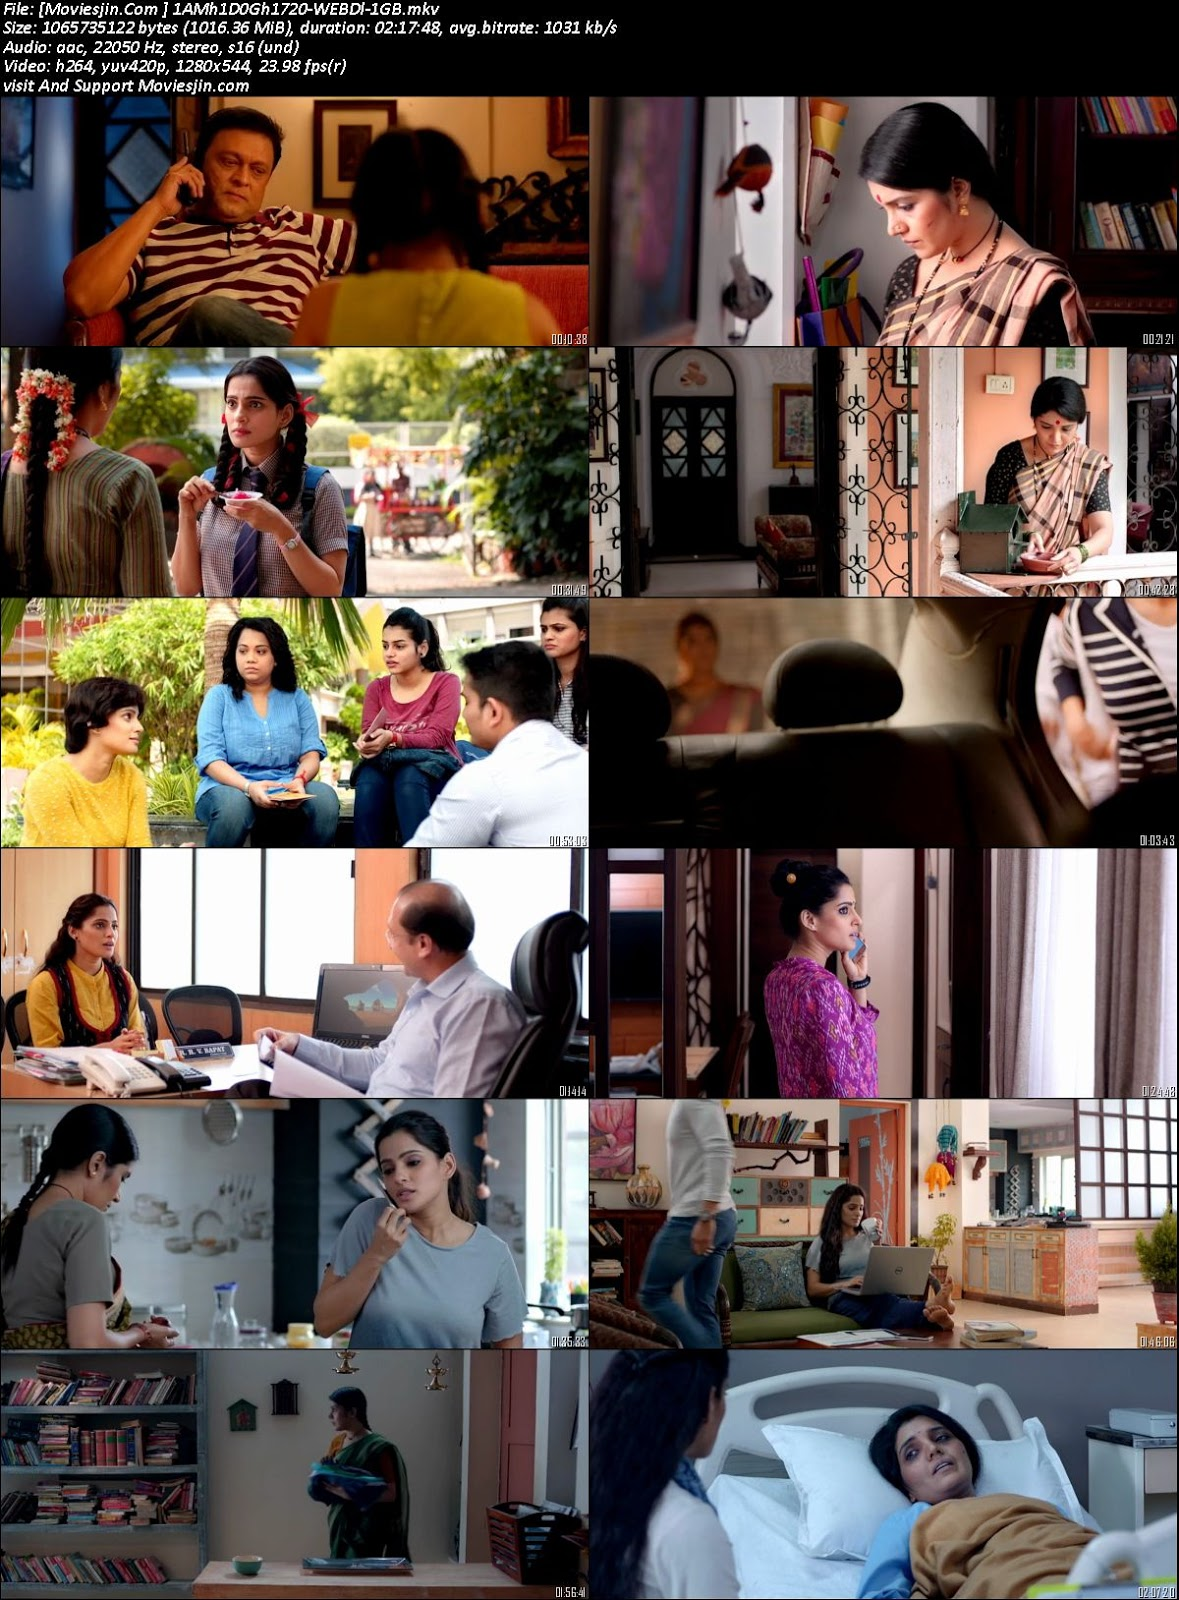 Watch Online Aamhi Doghi 2018 HD 400MB Marathi Movie 720p Download Full Movie Download Khatrimaza, free download 9xmovies,